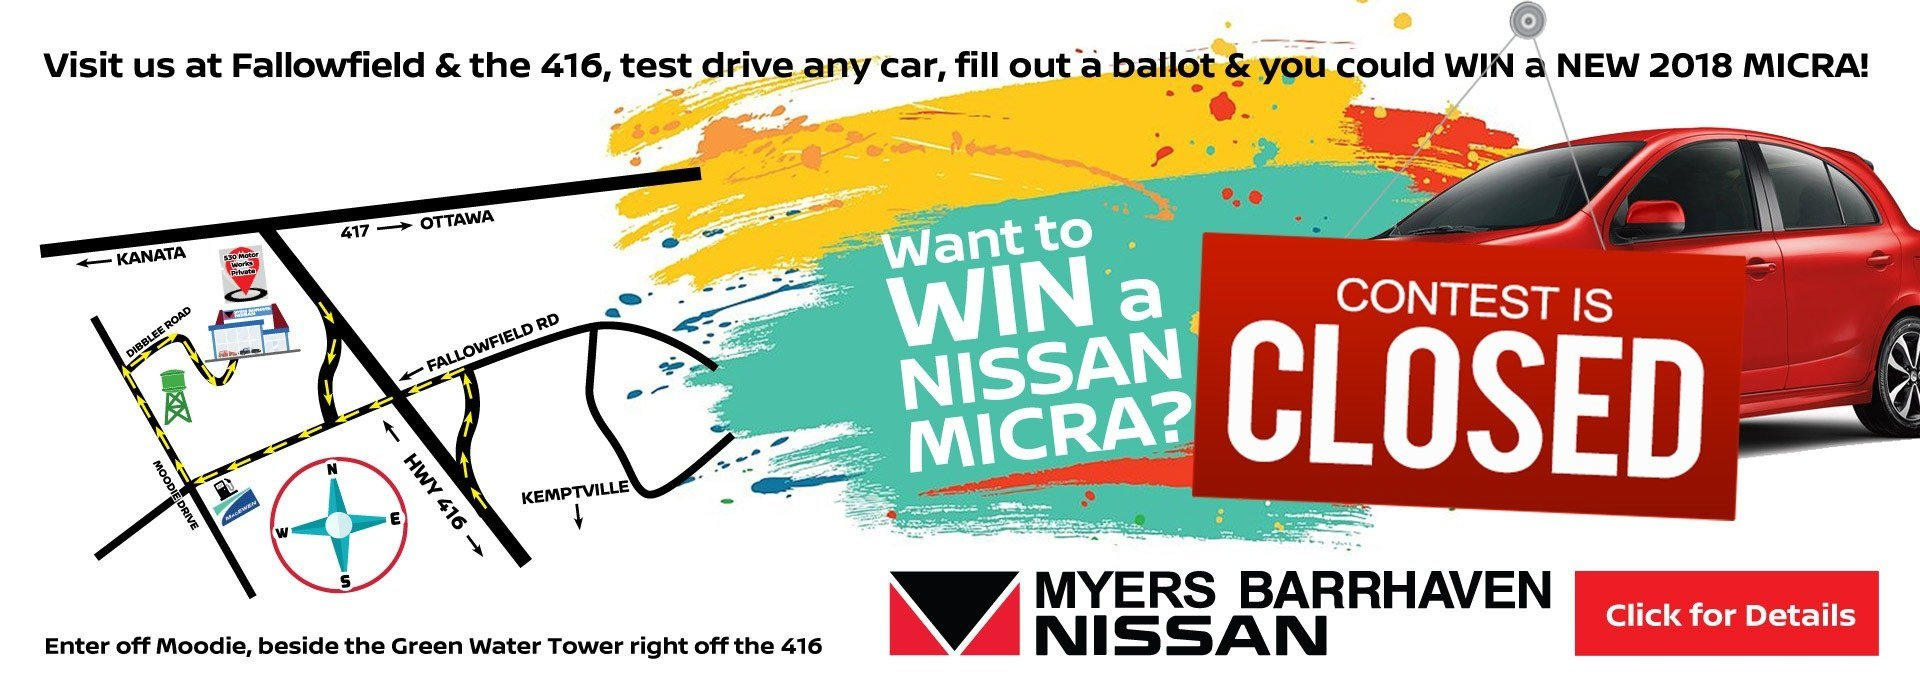 micra giveaway